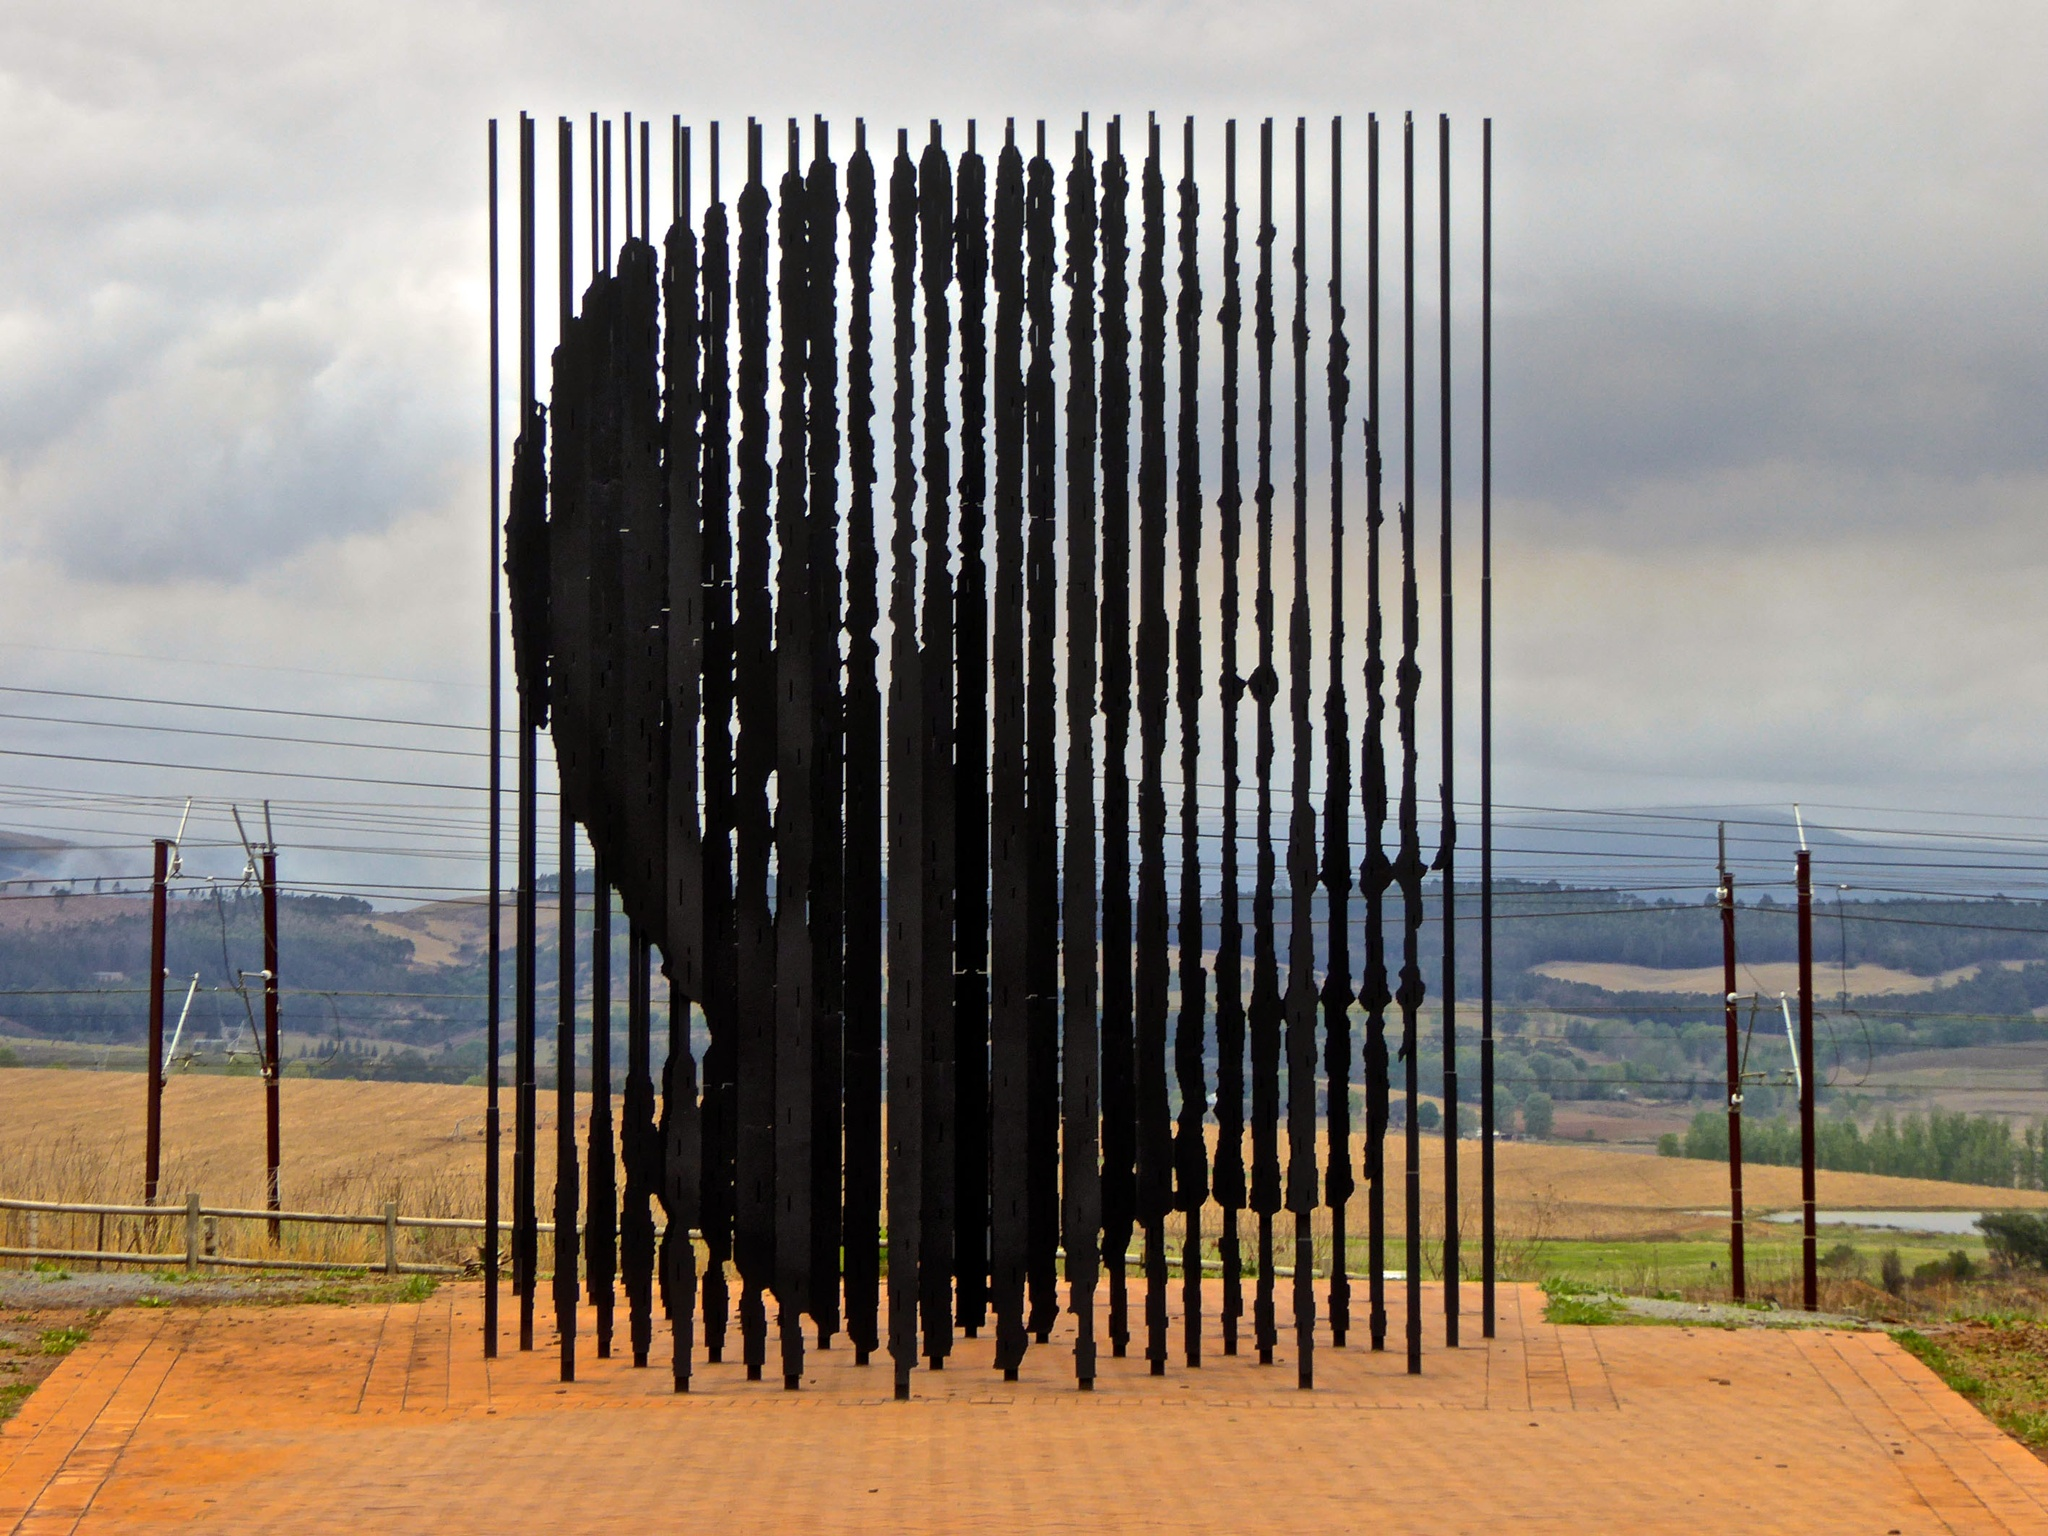 Mandela Monument near Howick, South Africa by Erwin Widmer